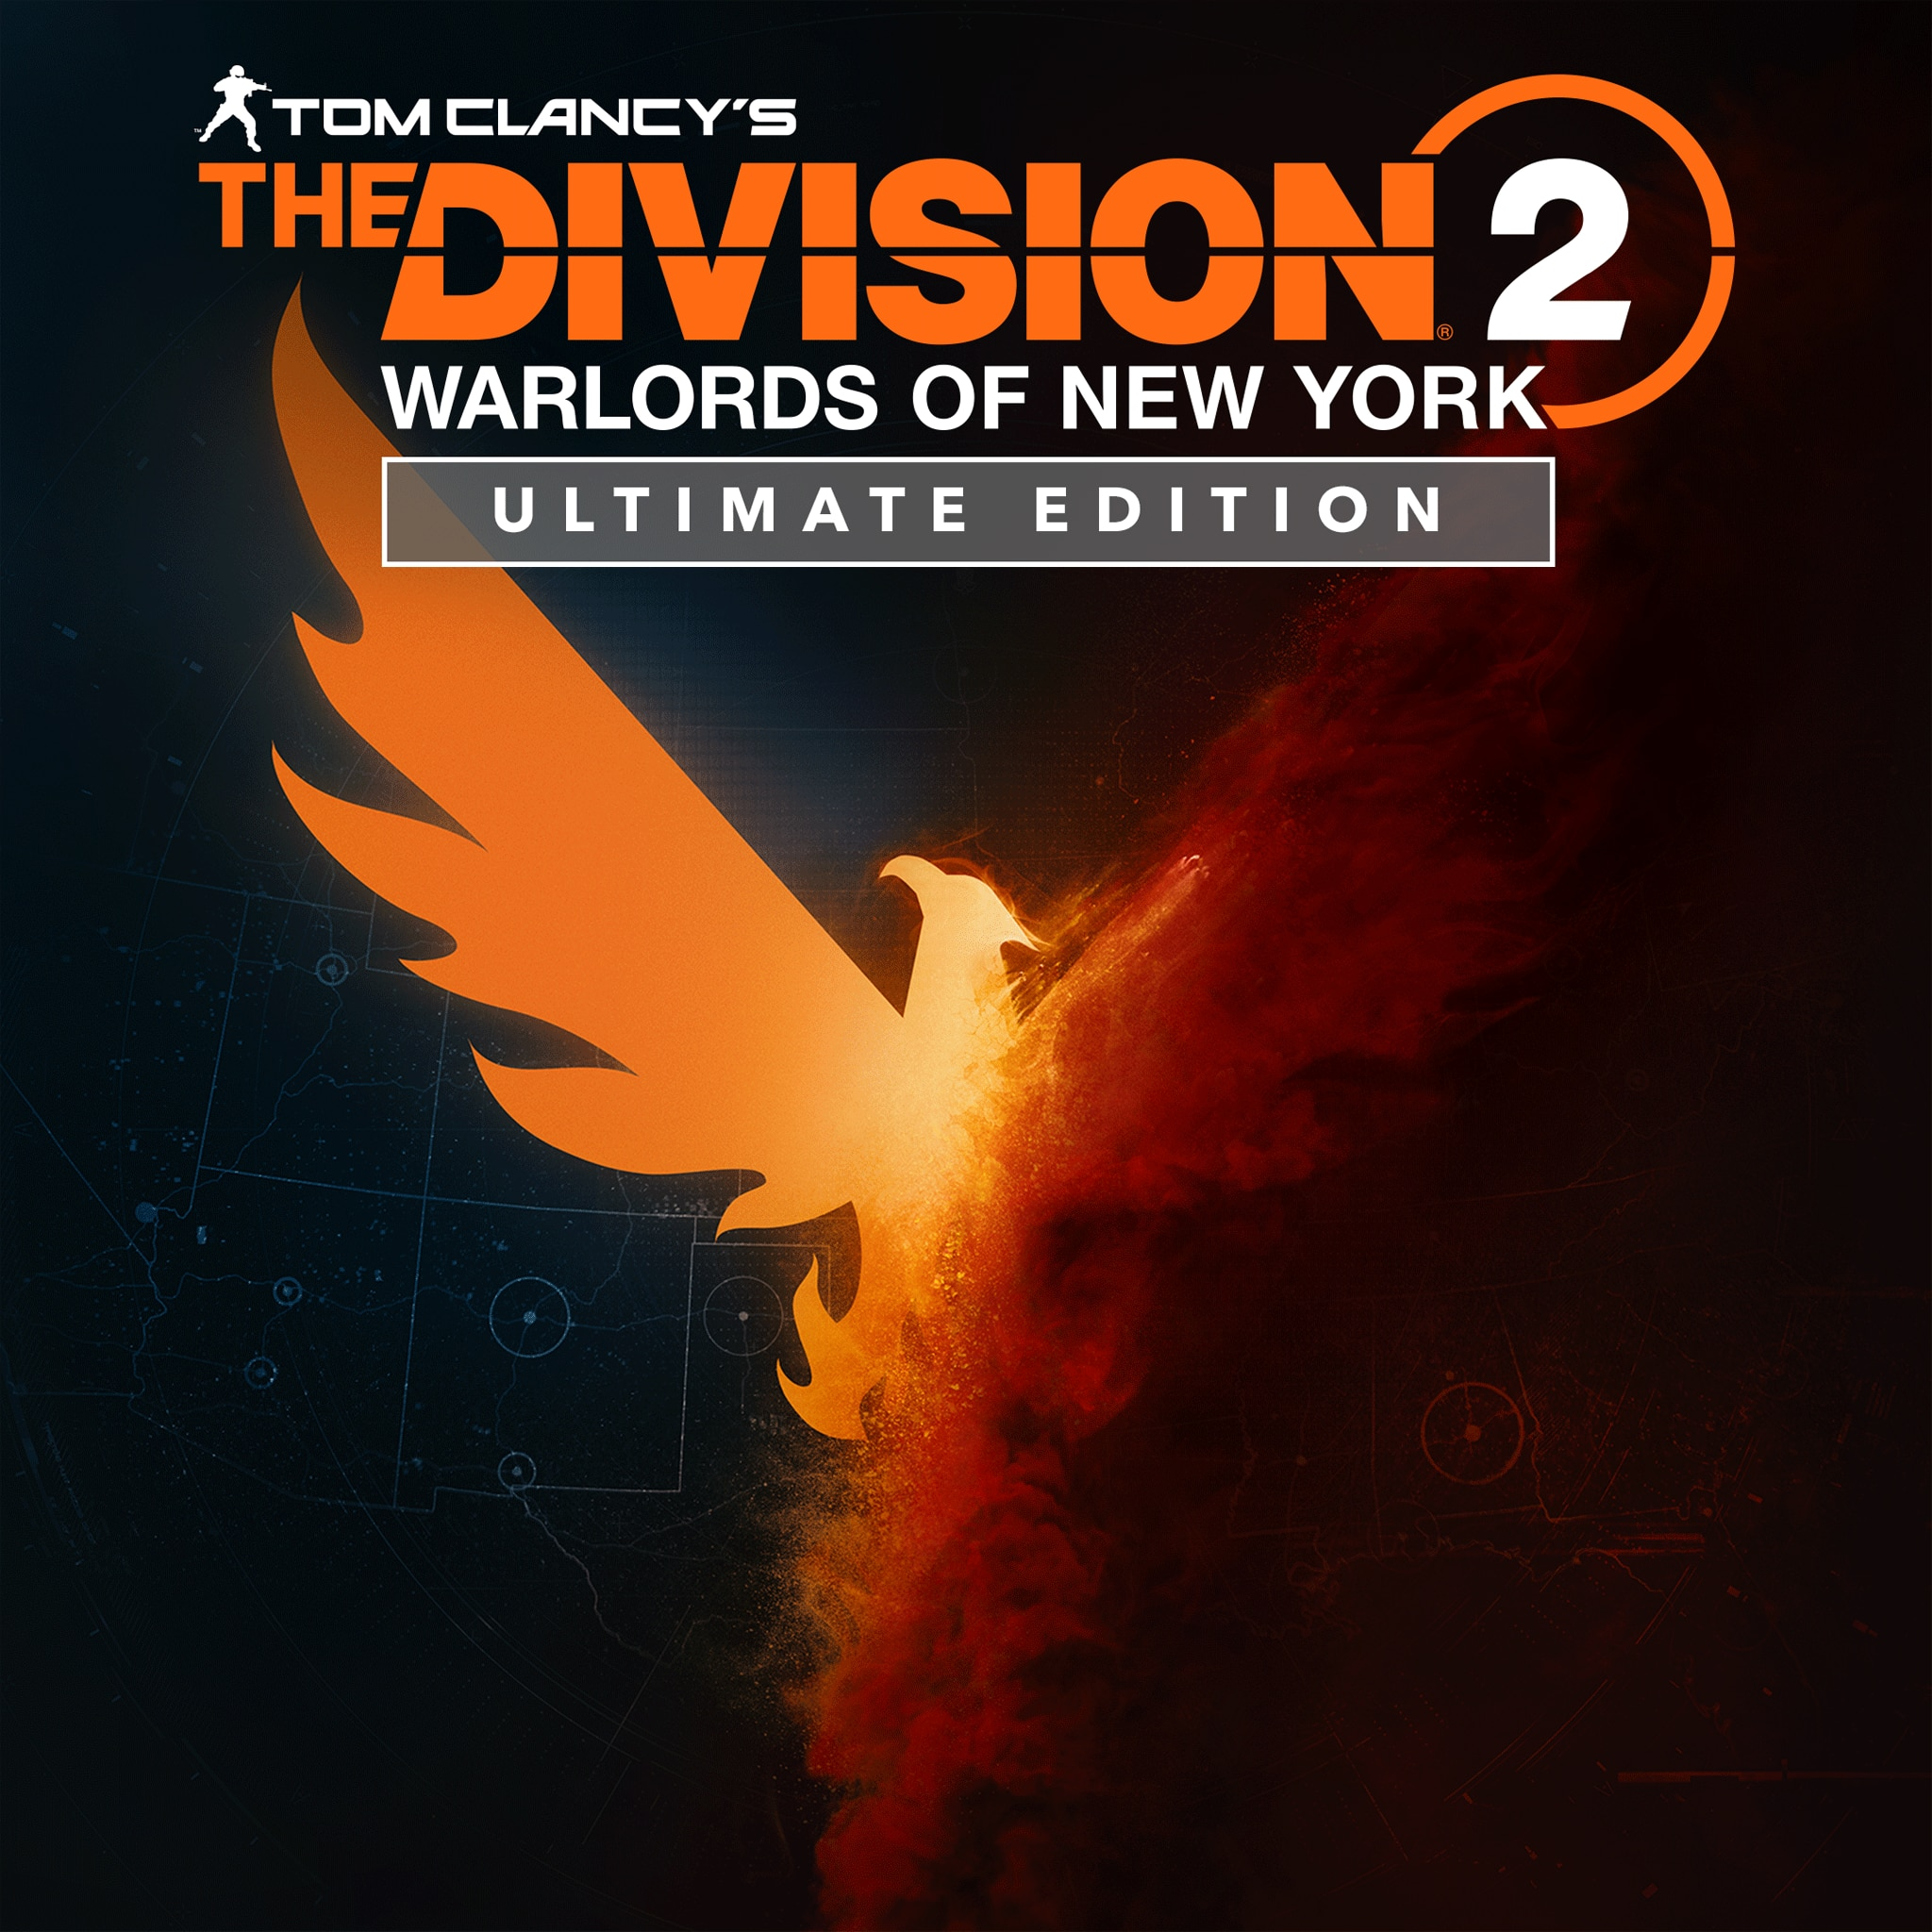 The Division 2 - Warlords of New York Ultimate Edition